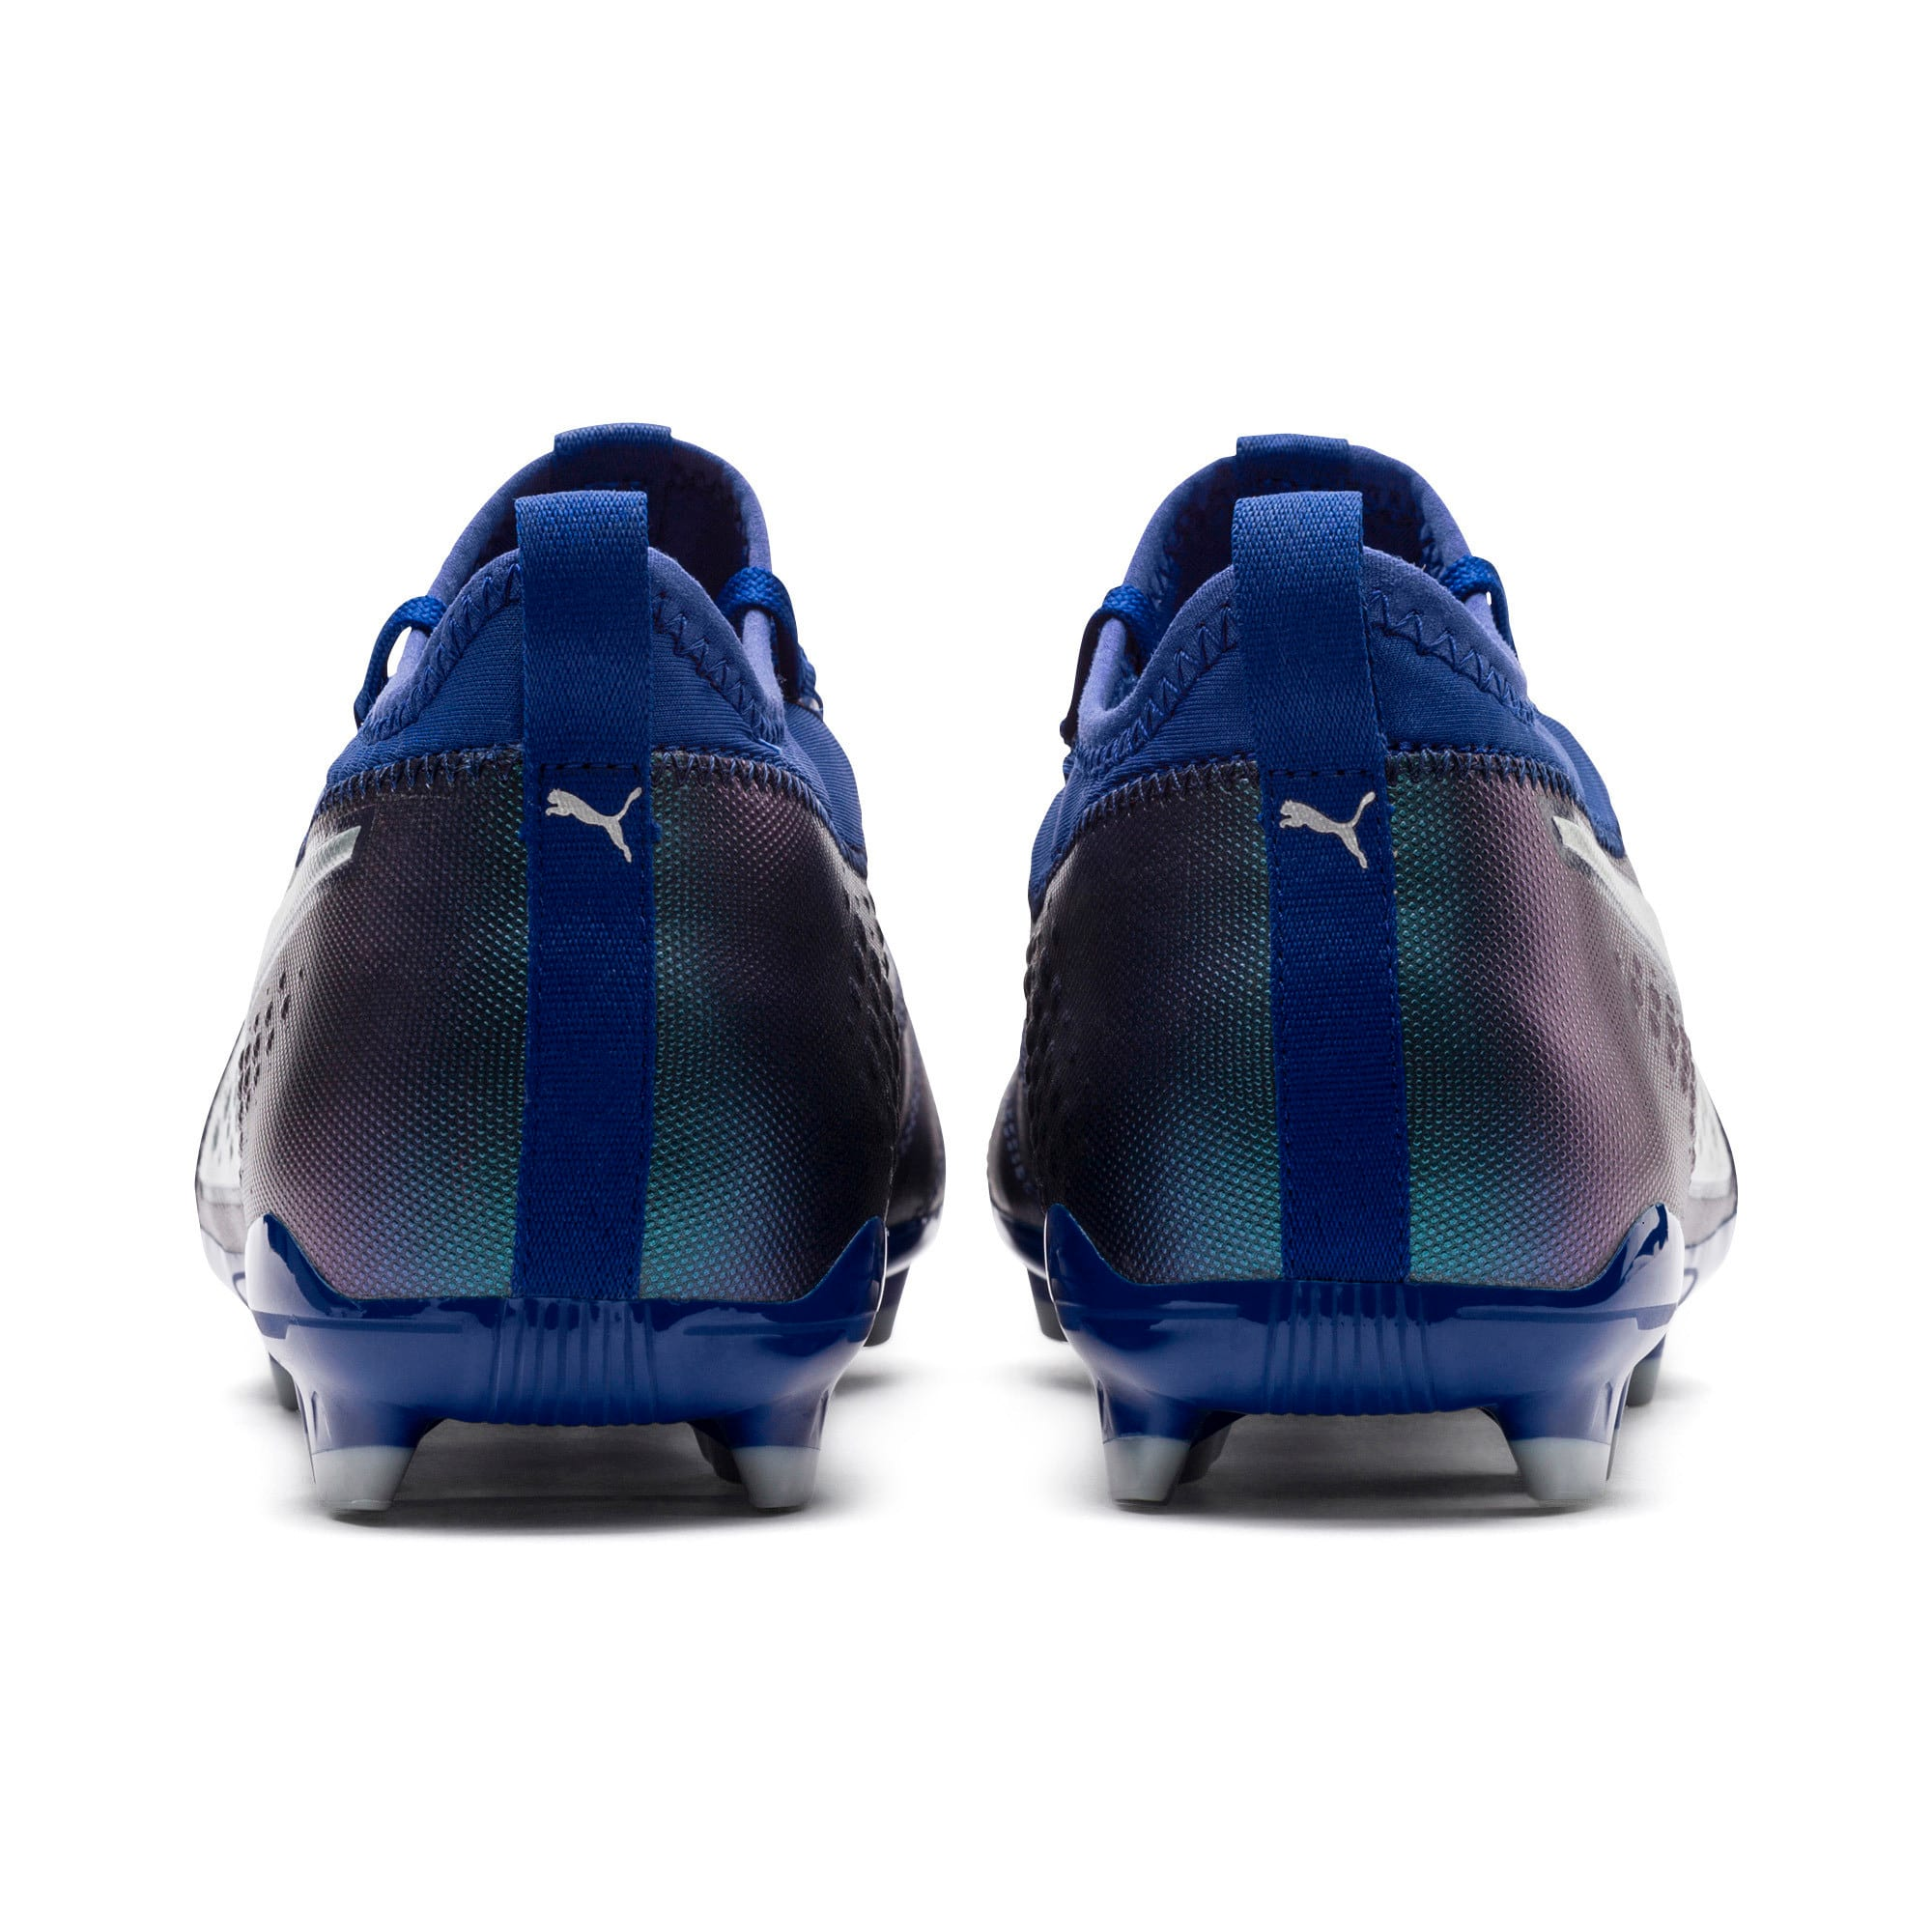 Thumbnail 3 of PUMA ONE 3 Leather FG Men's Football Boots, Sodalite Blue-Silver-Peacoat, medium-IND